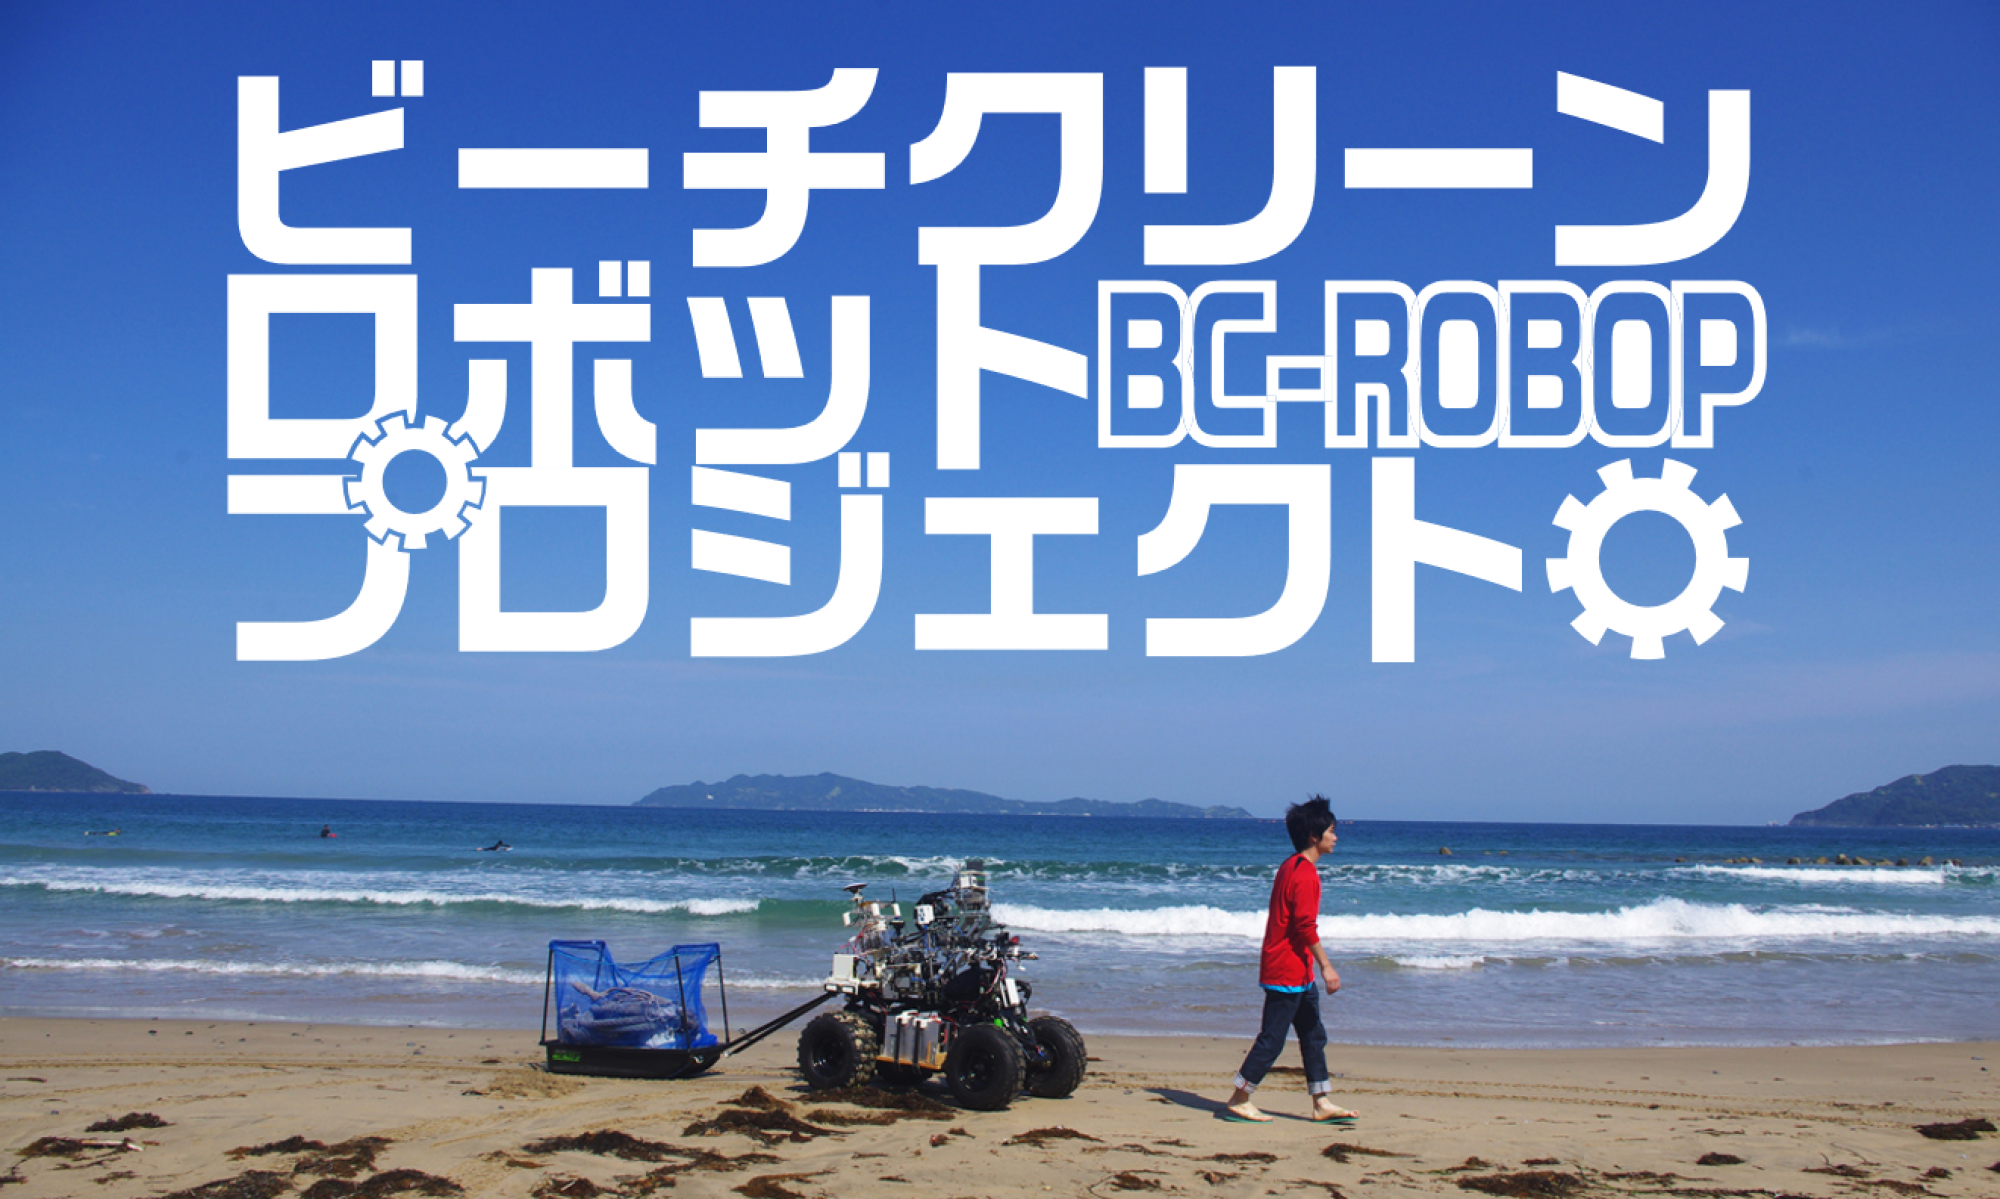 ビーチクリーンロボットプロジェクト(BC-ROBOP)-The Institute of BC-ROBOP Coastal Engineering